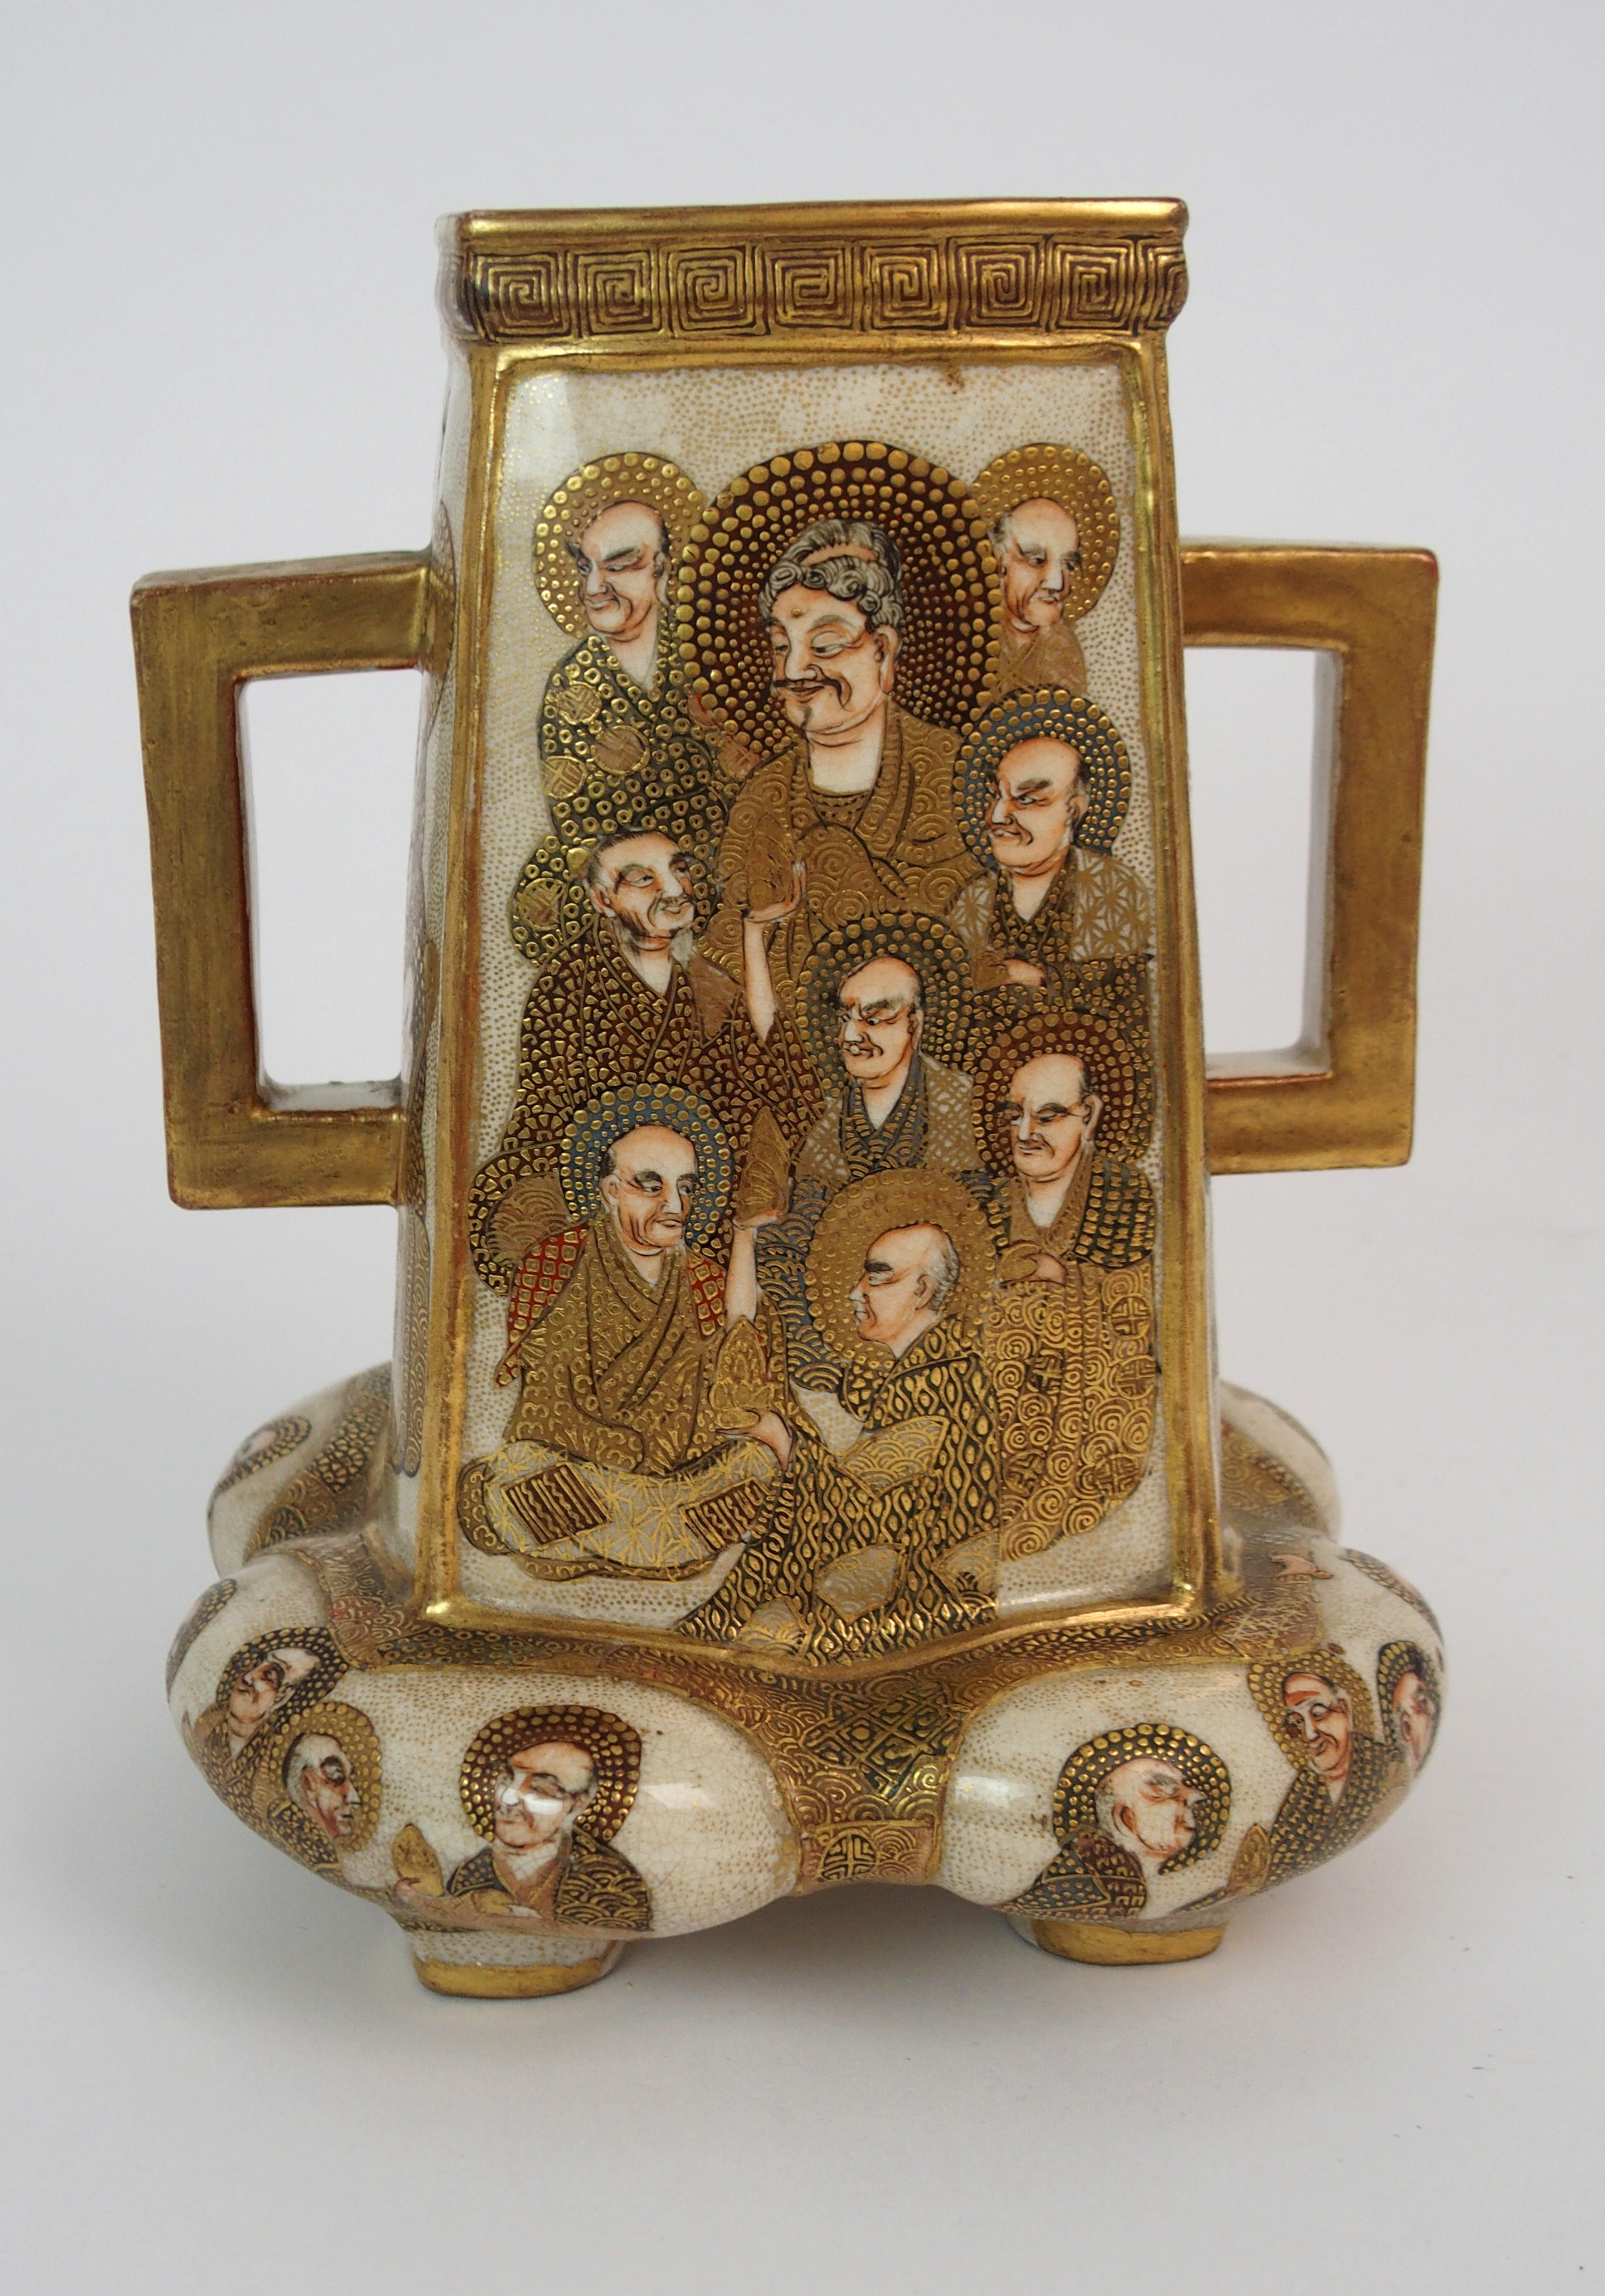 A SATSUMA SQUARE TAPERING TWO HANDLED VASE painted with mythical gods on a gilt ground, beneath